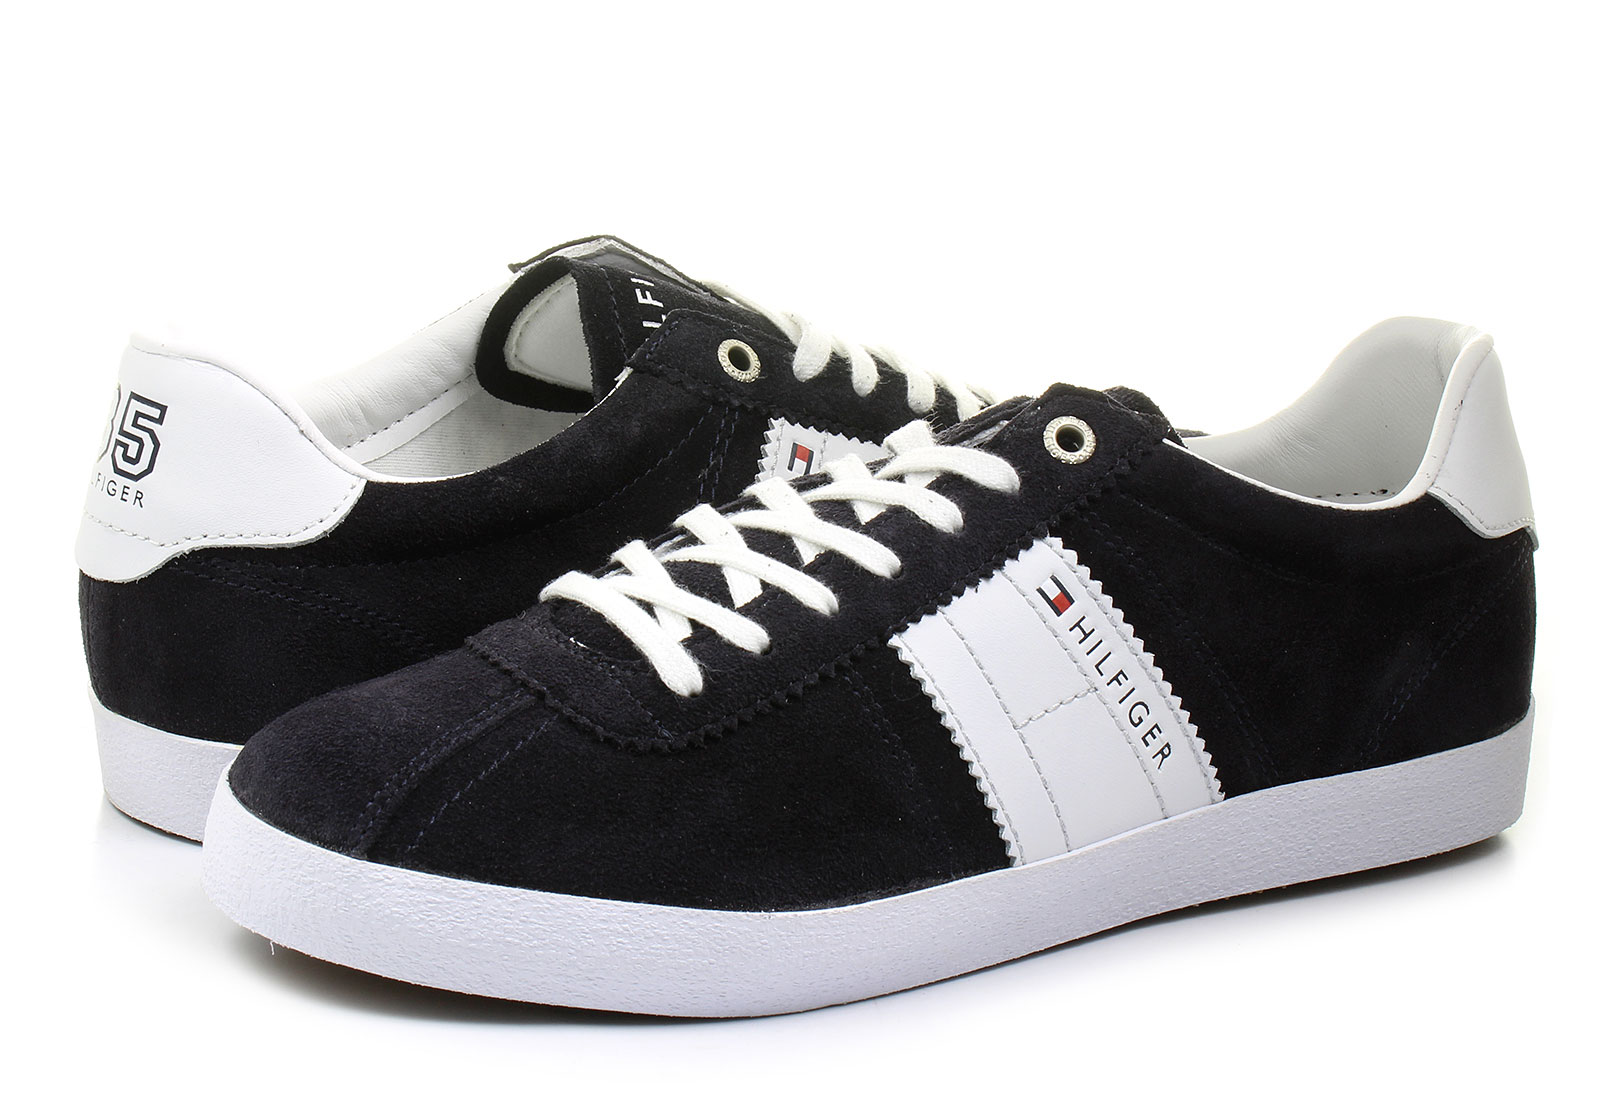 Tommy Hilfiger Cipő - Playoff 1b - 16S-1093-403 - Office Shoes ... a0f3f65d75